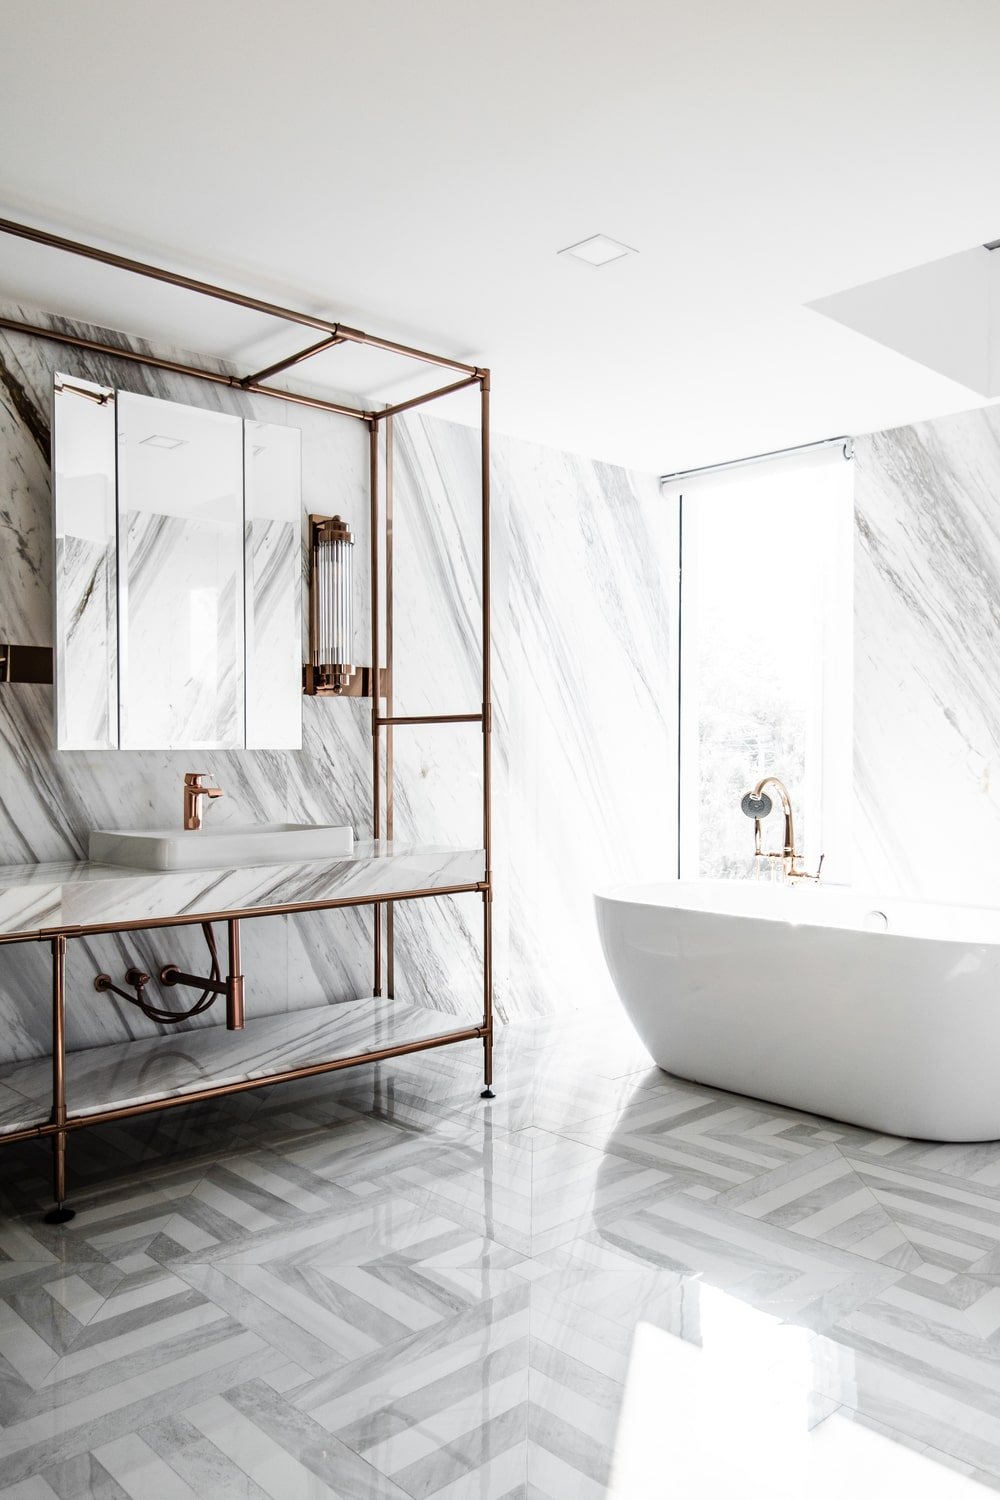 The bathroom has light gray patterned tiles with a shiny tone to match the marble.